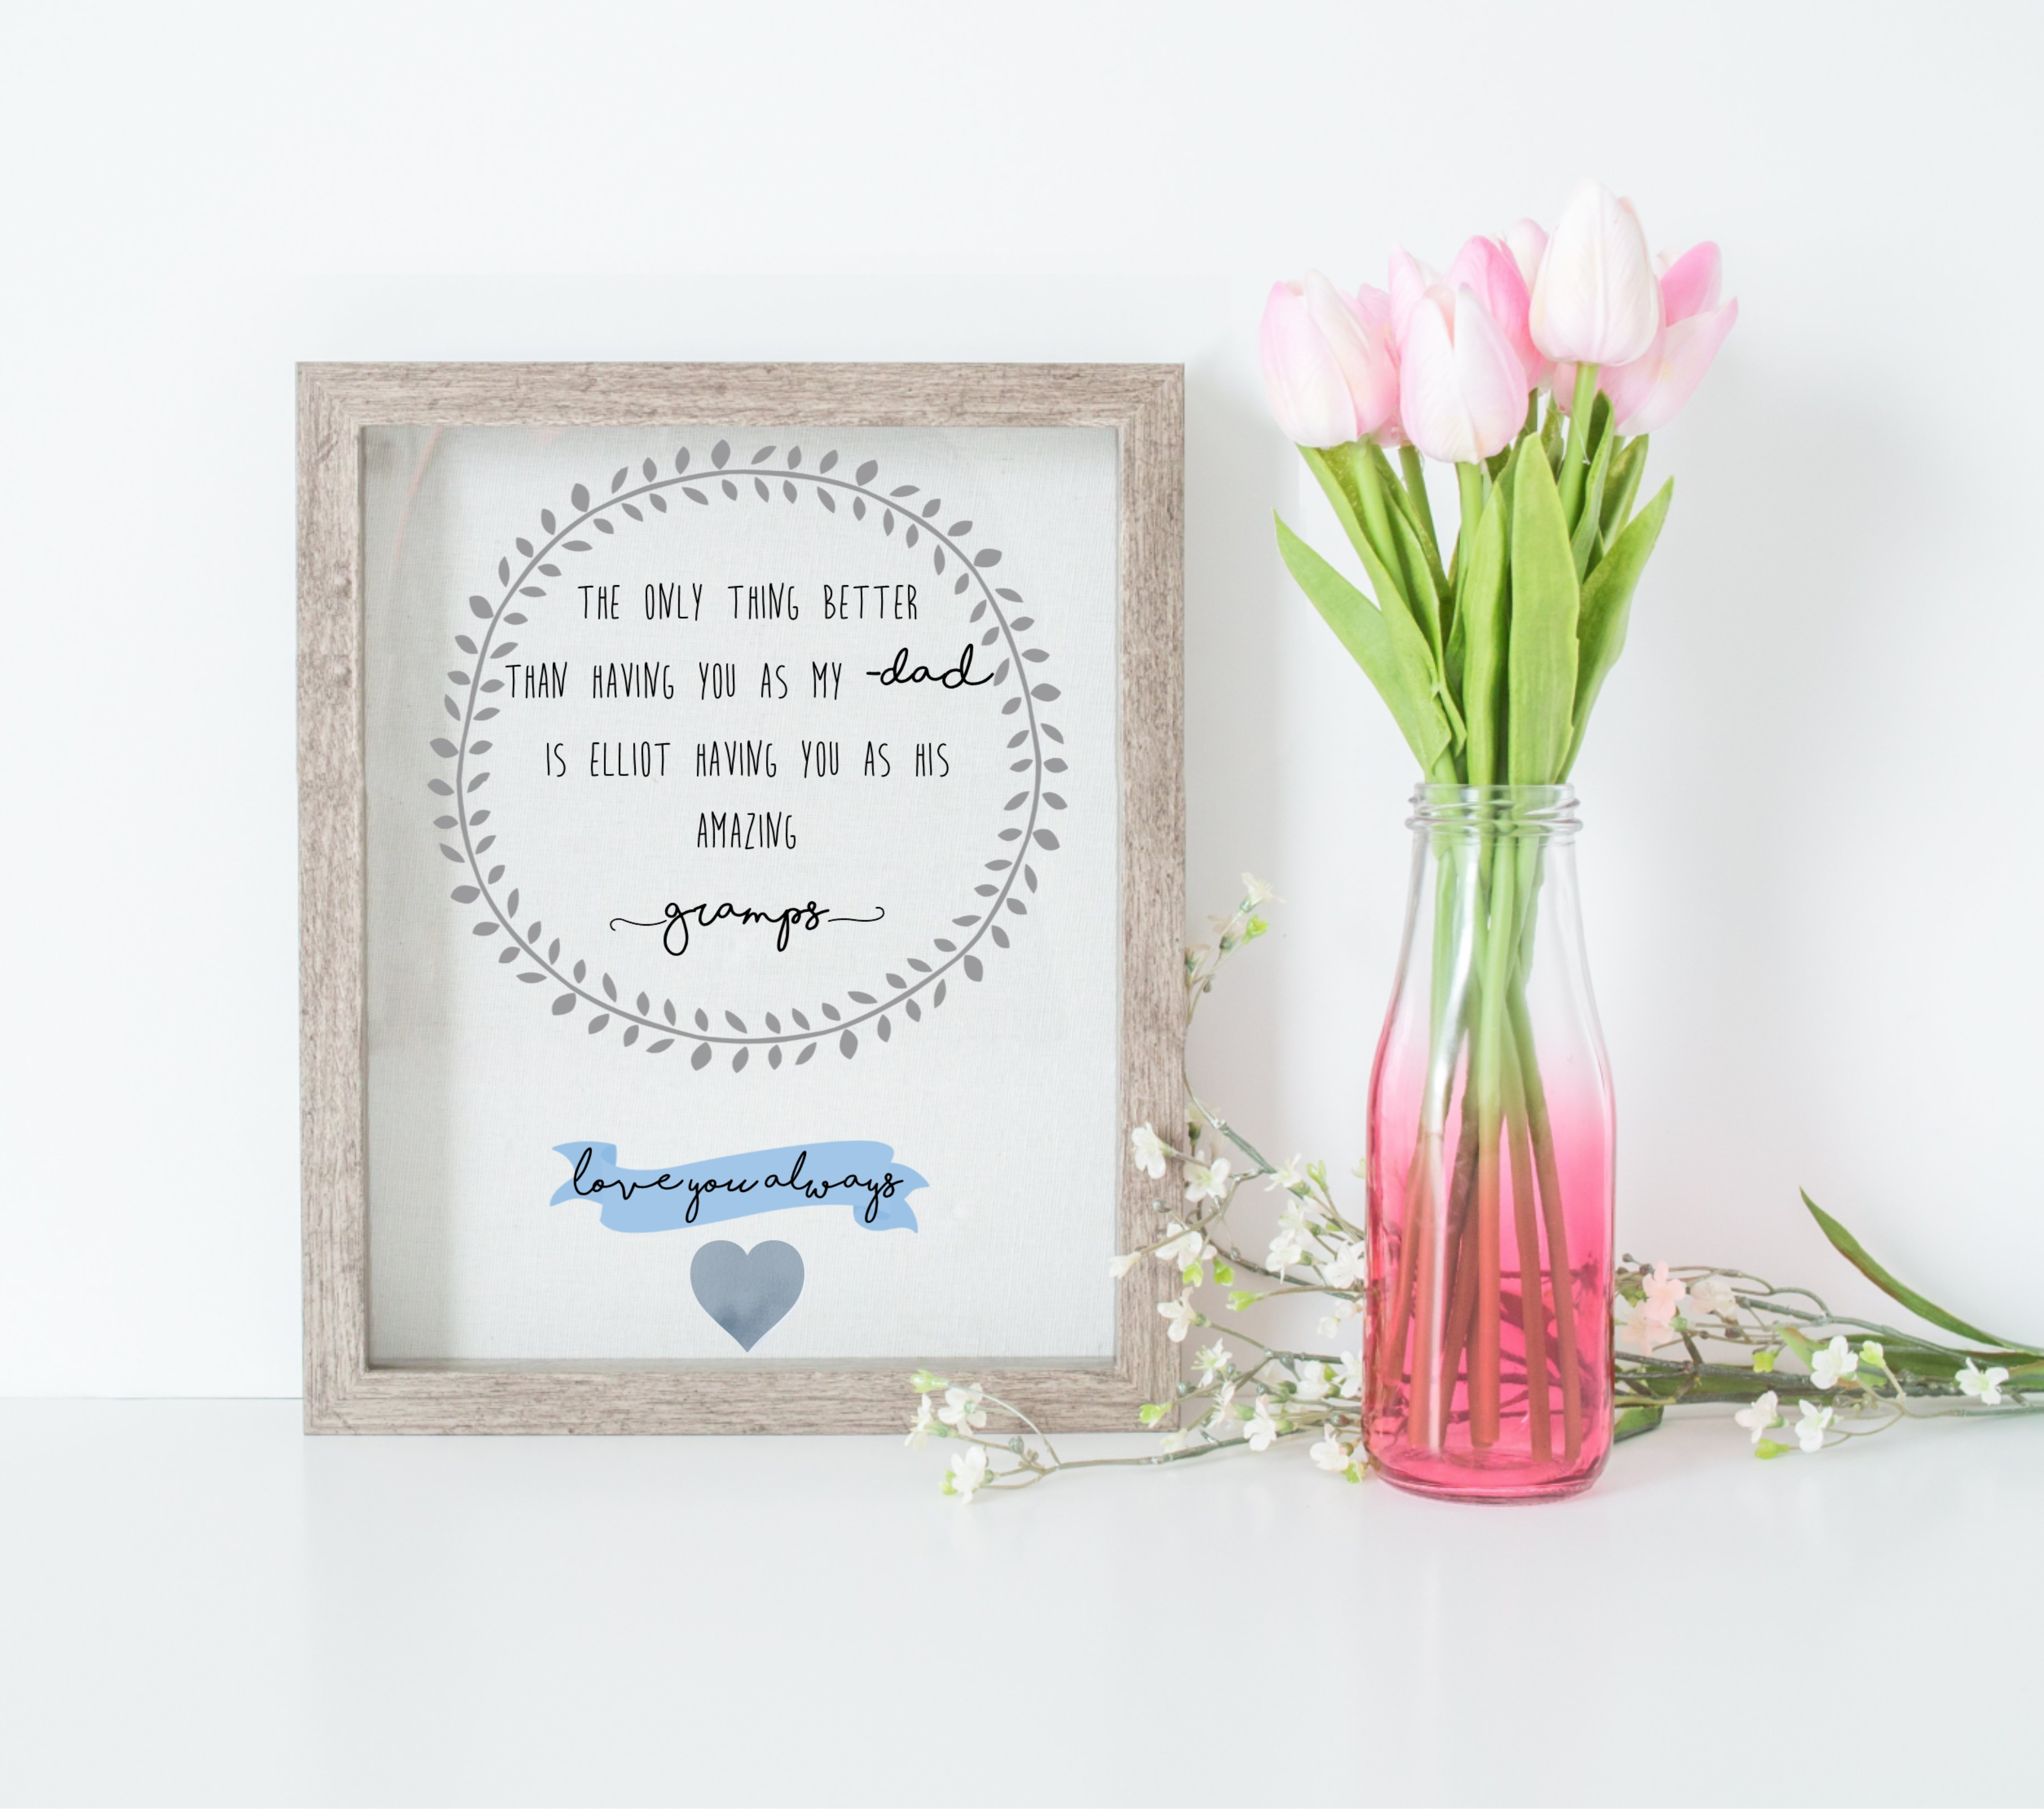 6de505a3d Personalised Only Thing Better Print Father's Day Print | Love ...